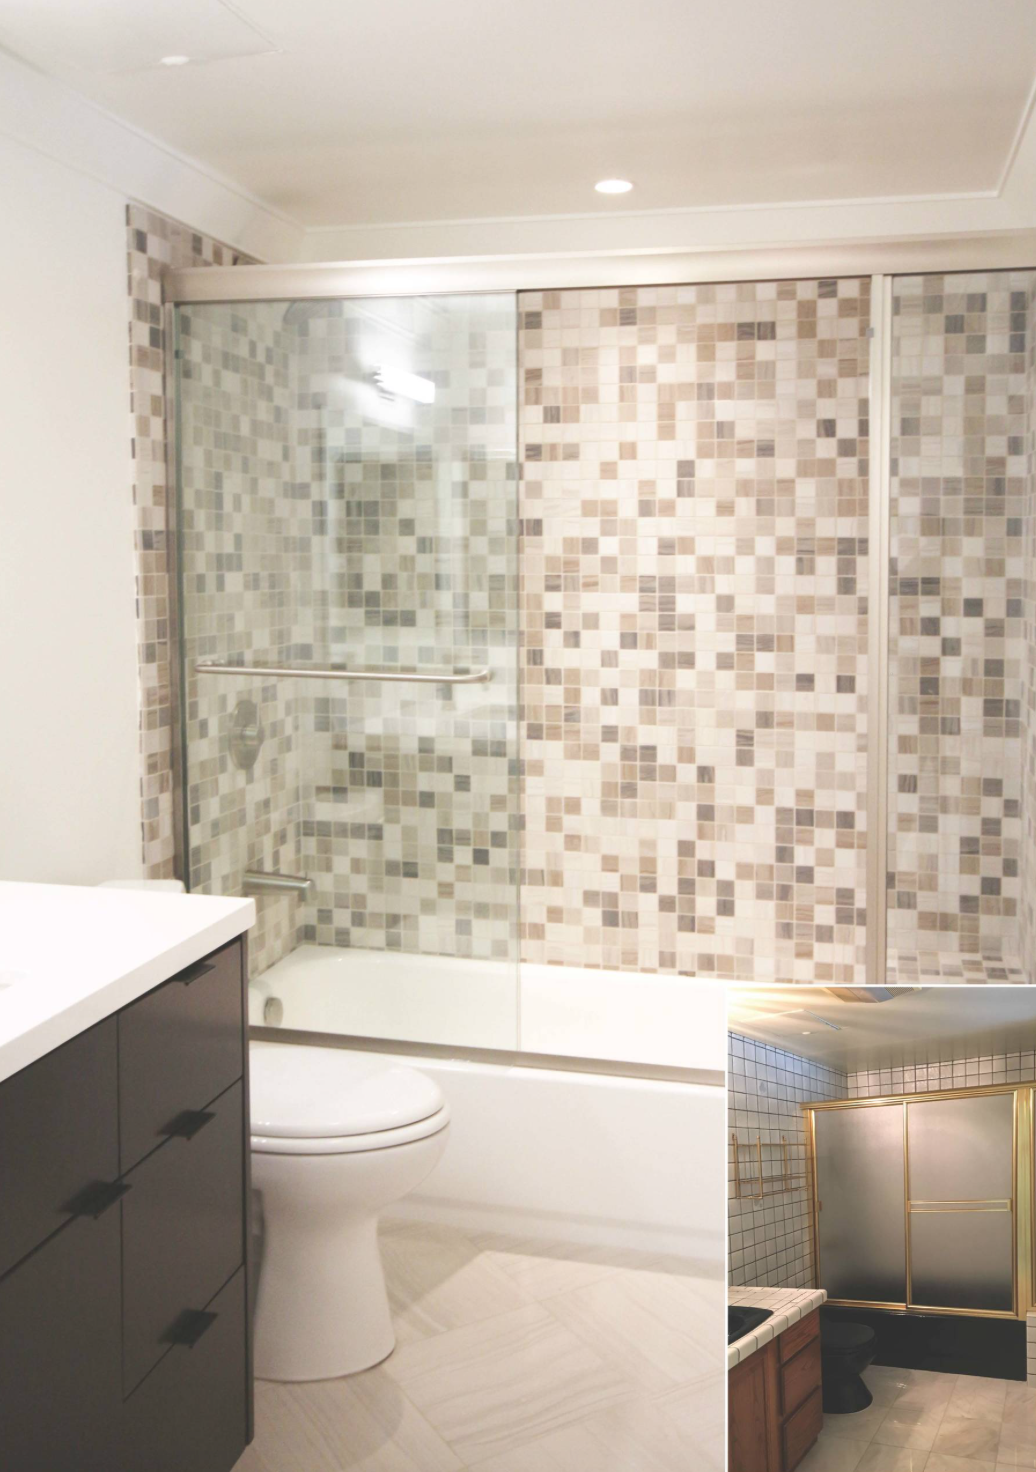 Designing Hygienic & Sustainable Bathrooms – SoCalContractor Blog ...